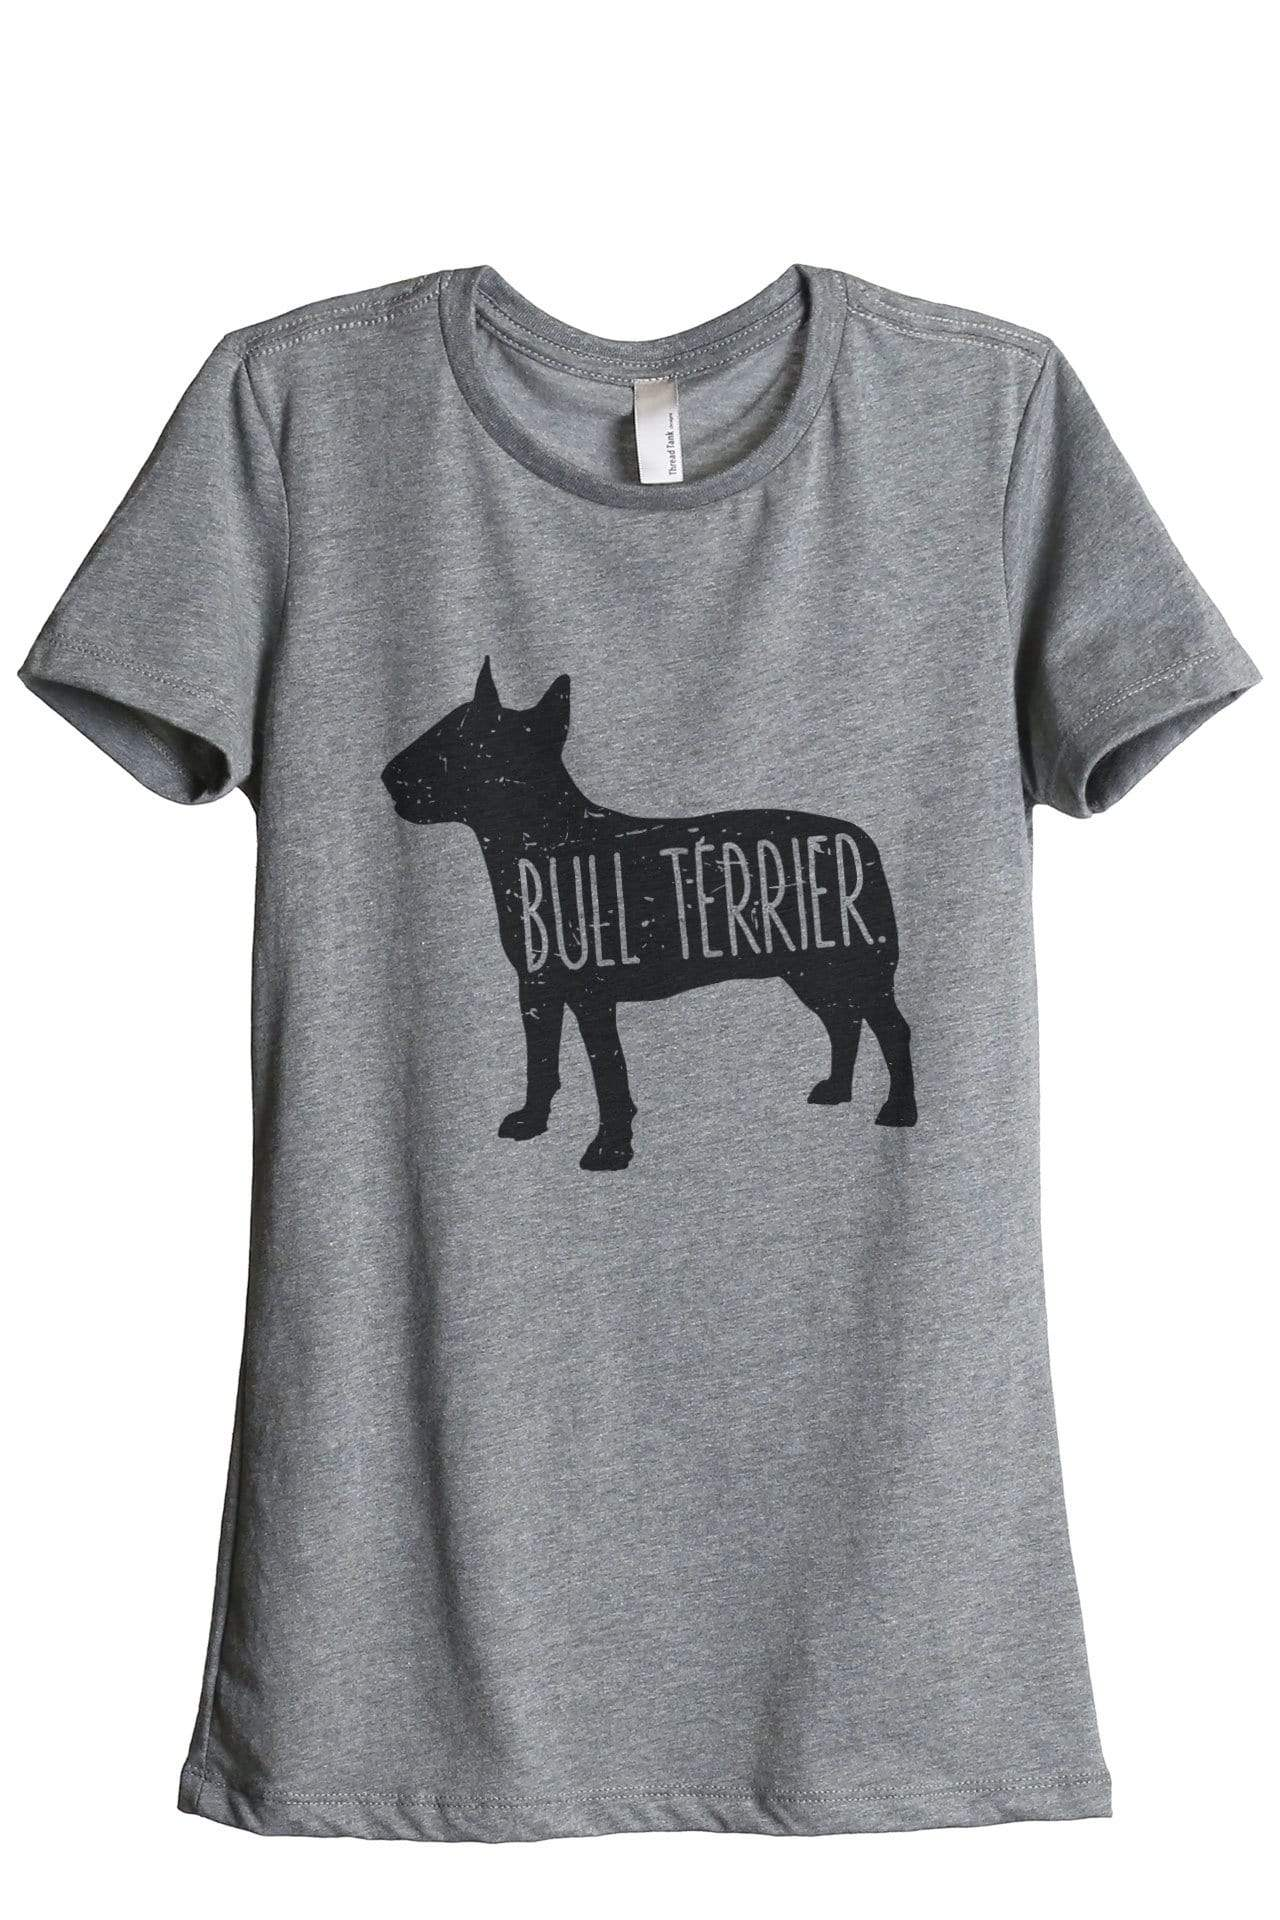 Bull Terrier Dog Graphic Women's Heather Grey Relaxed Crew T-Shirt Tee Top